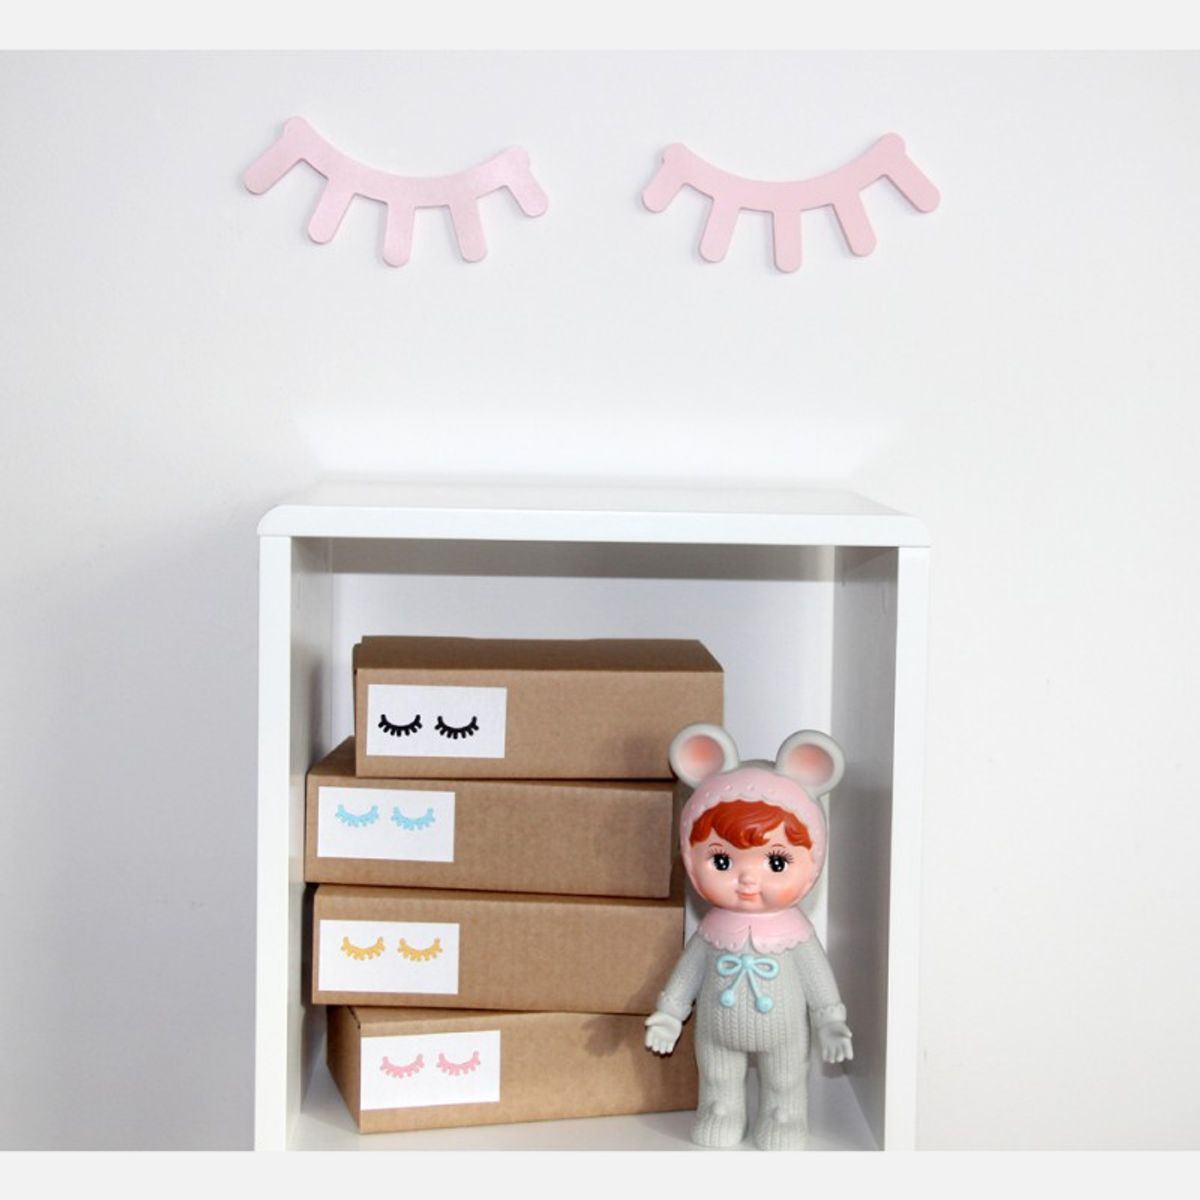 Kinderzimmer Dekoration, 2er Set Sleepy Eyes , Pink, Aus Holz, Handmade In  Schweden ...